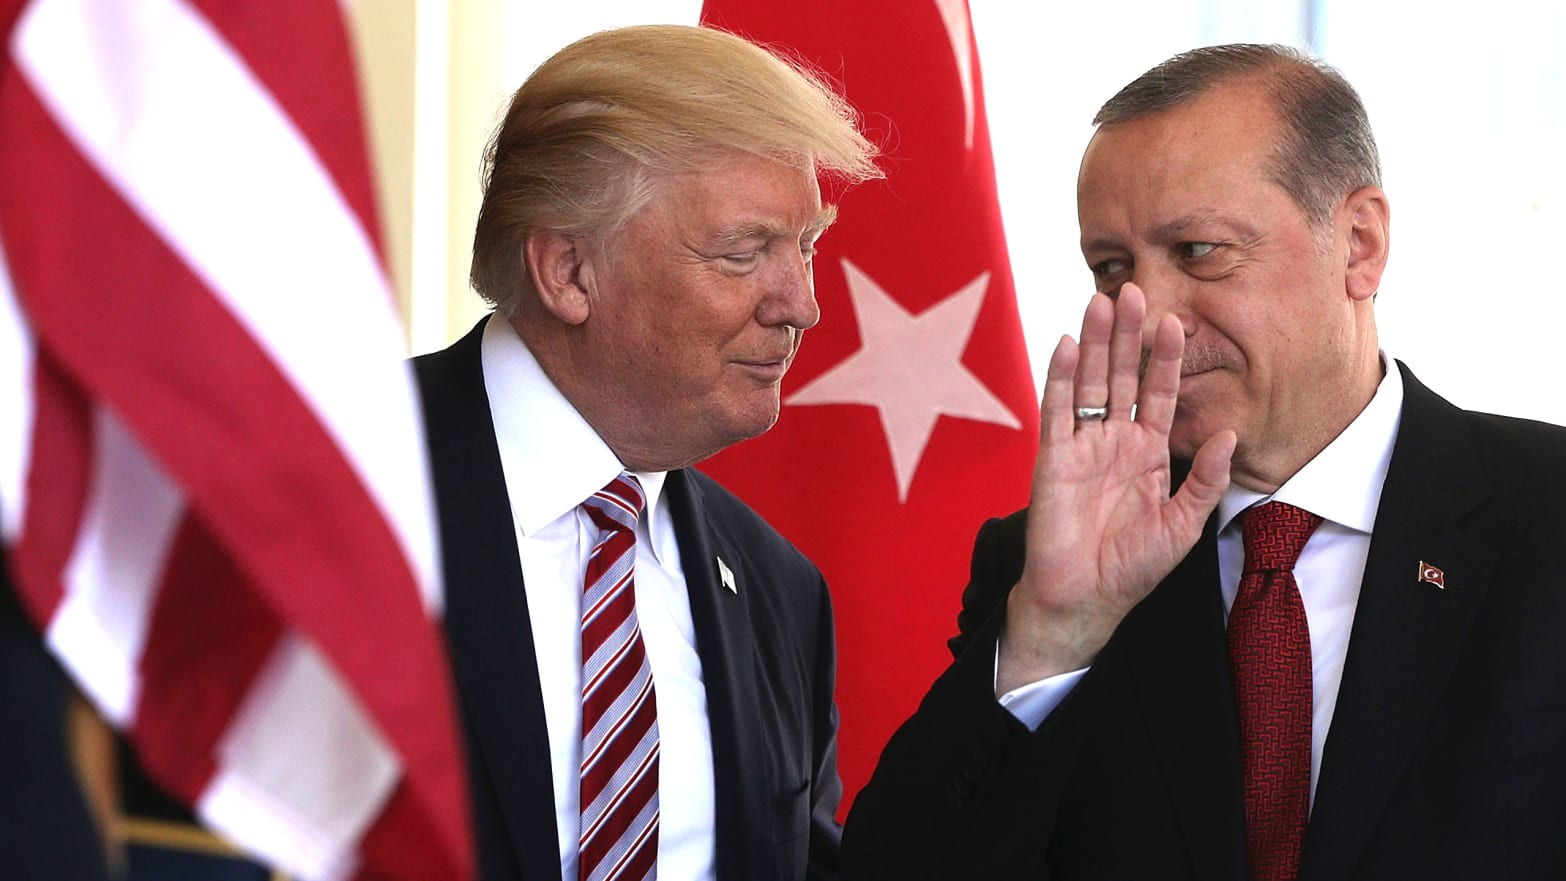 U.S. President Donald Trump (L) welcomes President Recep Tayyip Erdogan (R) of Turkey outside the West Wing of the White House May 16, 2017 in Washington, DC.